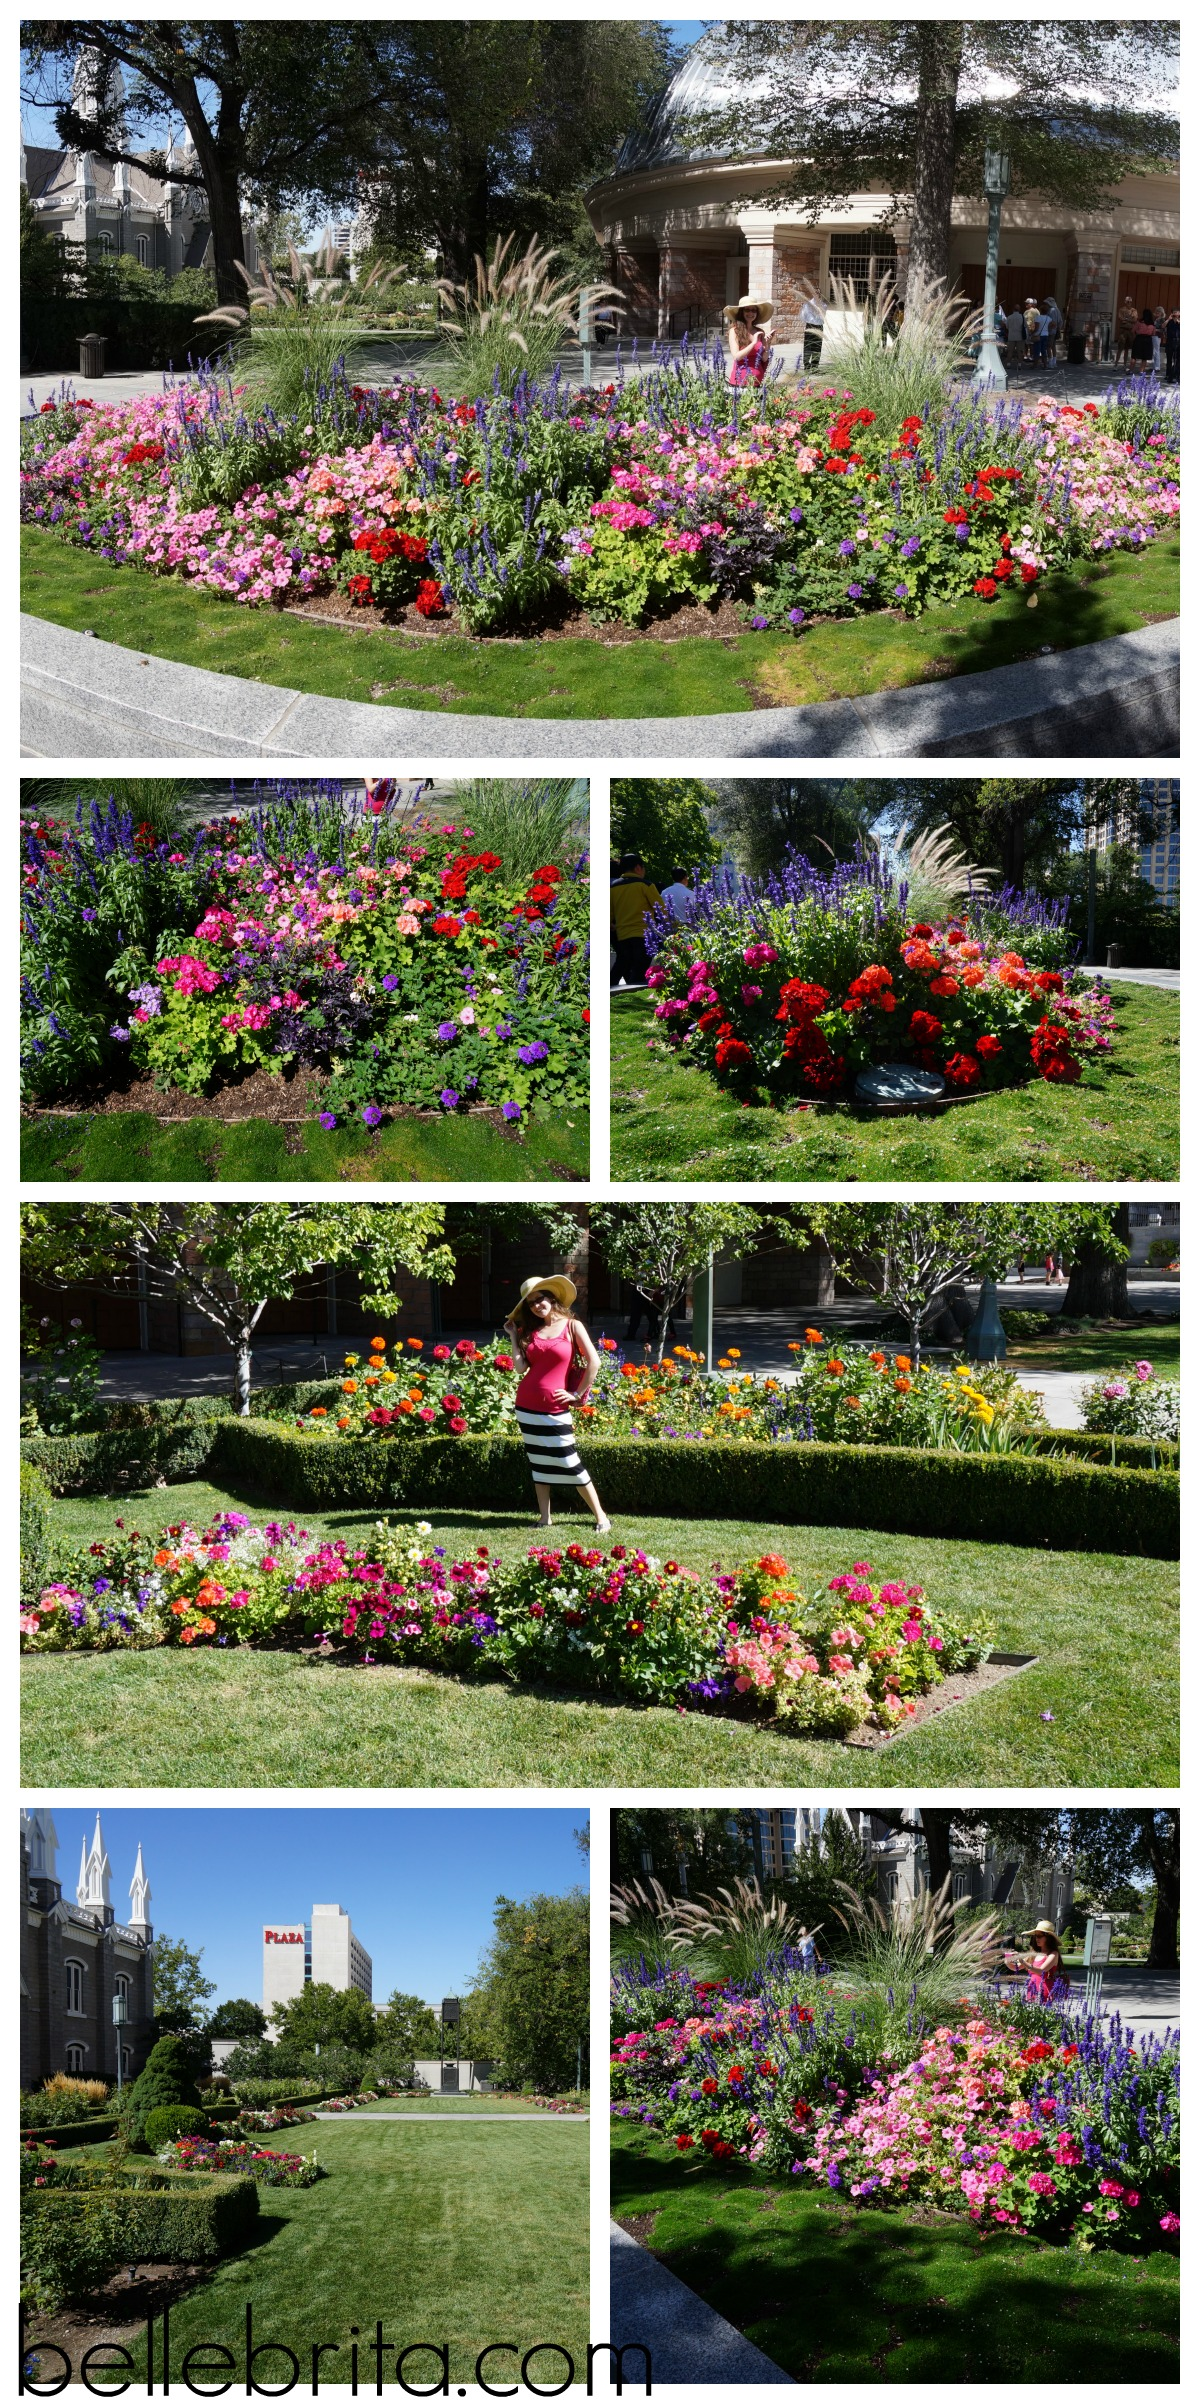 Admiring the gardens in Temple Square. Follow the link to learn more about this historic area! #travel #Utah